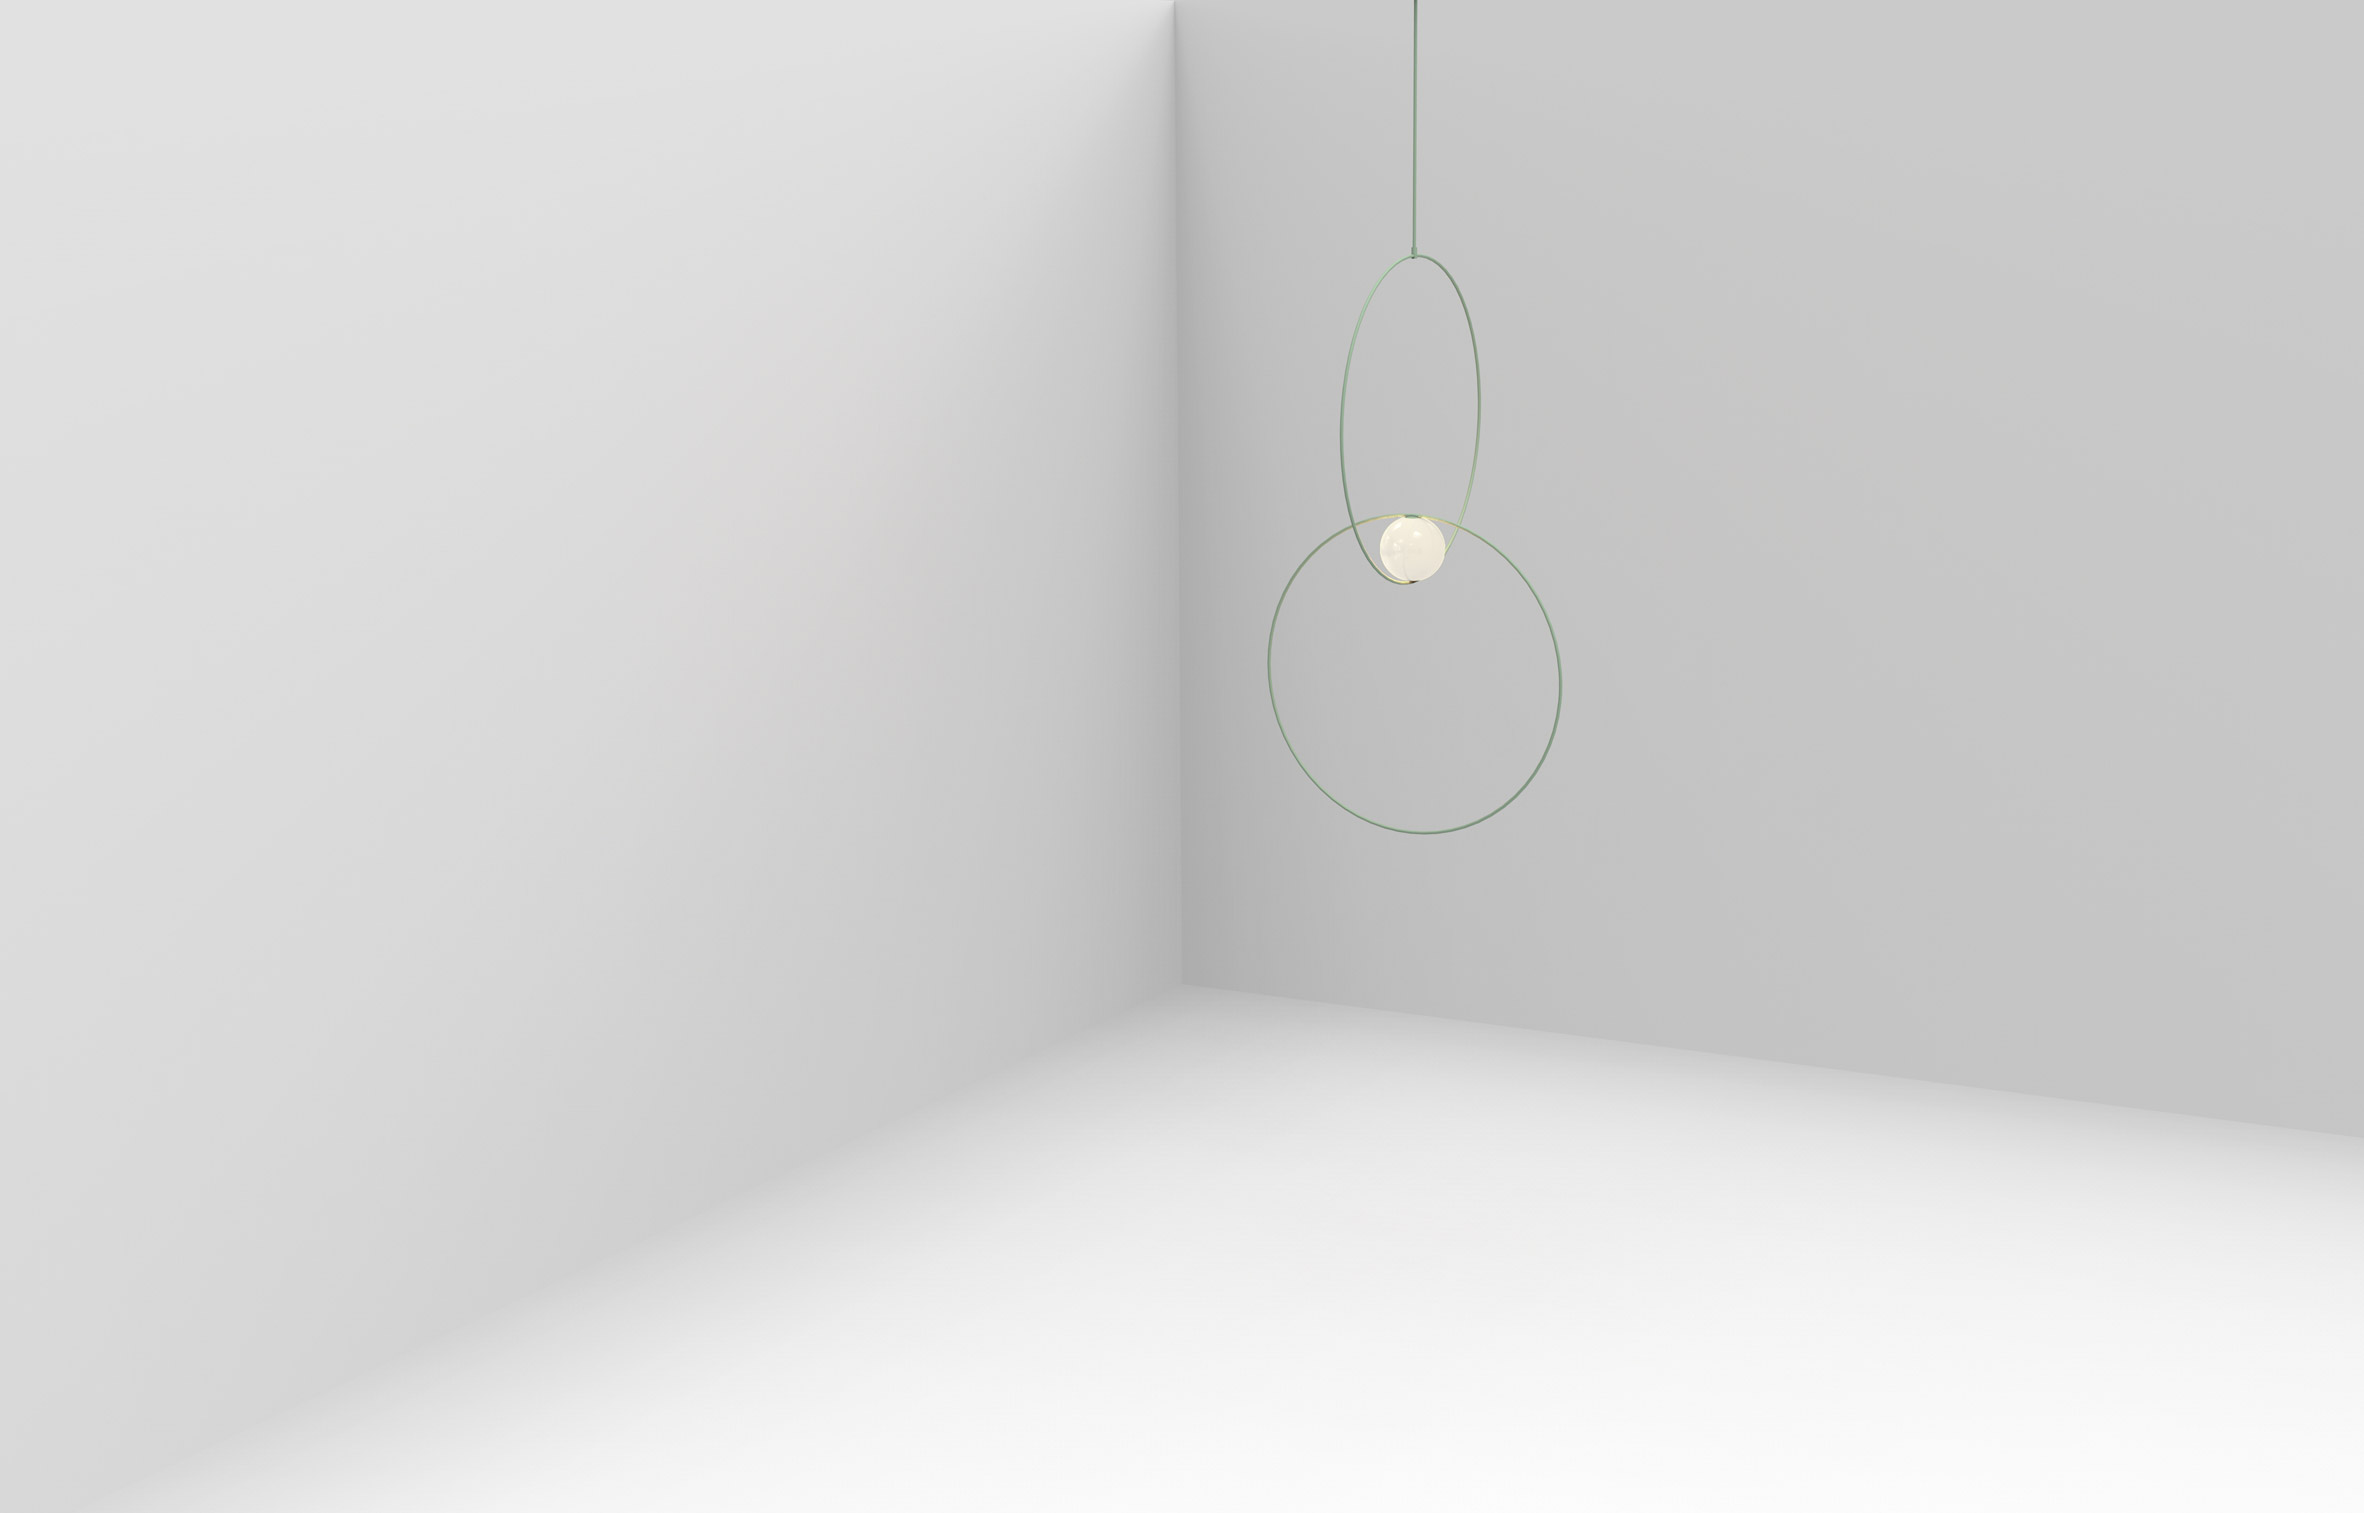 bespoke-loop-collection-by-michael-anastassiades-at-future-perfect-miami-design-lighting-_dezeen_2364_col_5